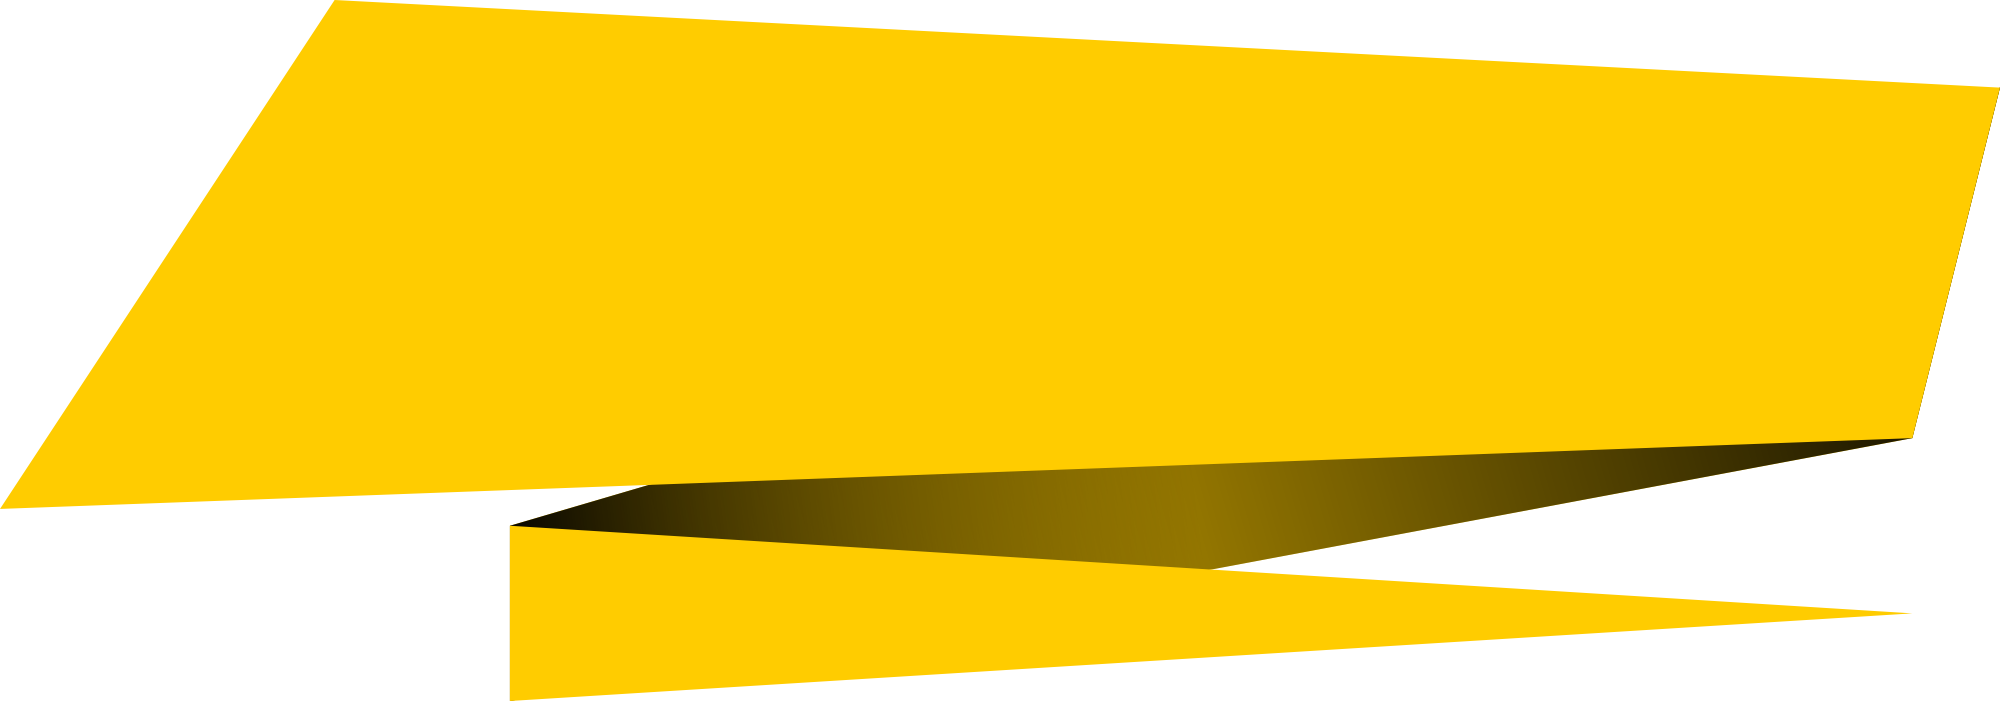 Yellow background png. Banner image arts